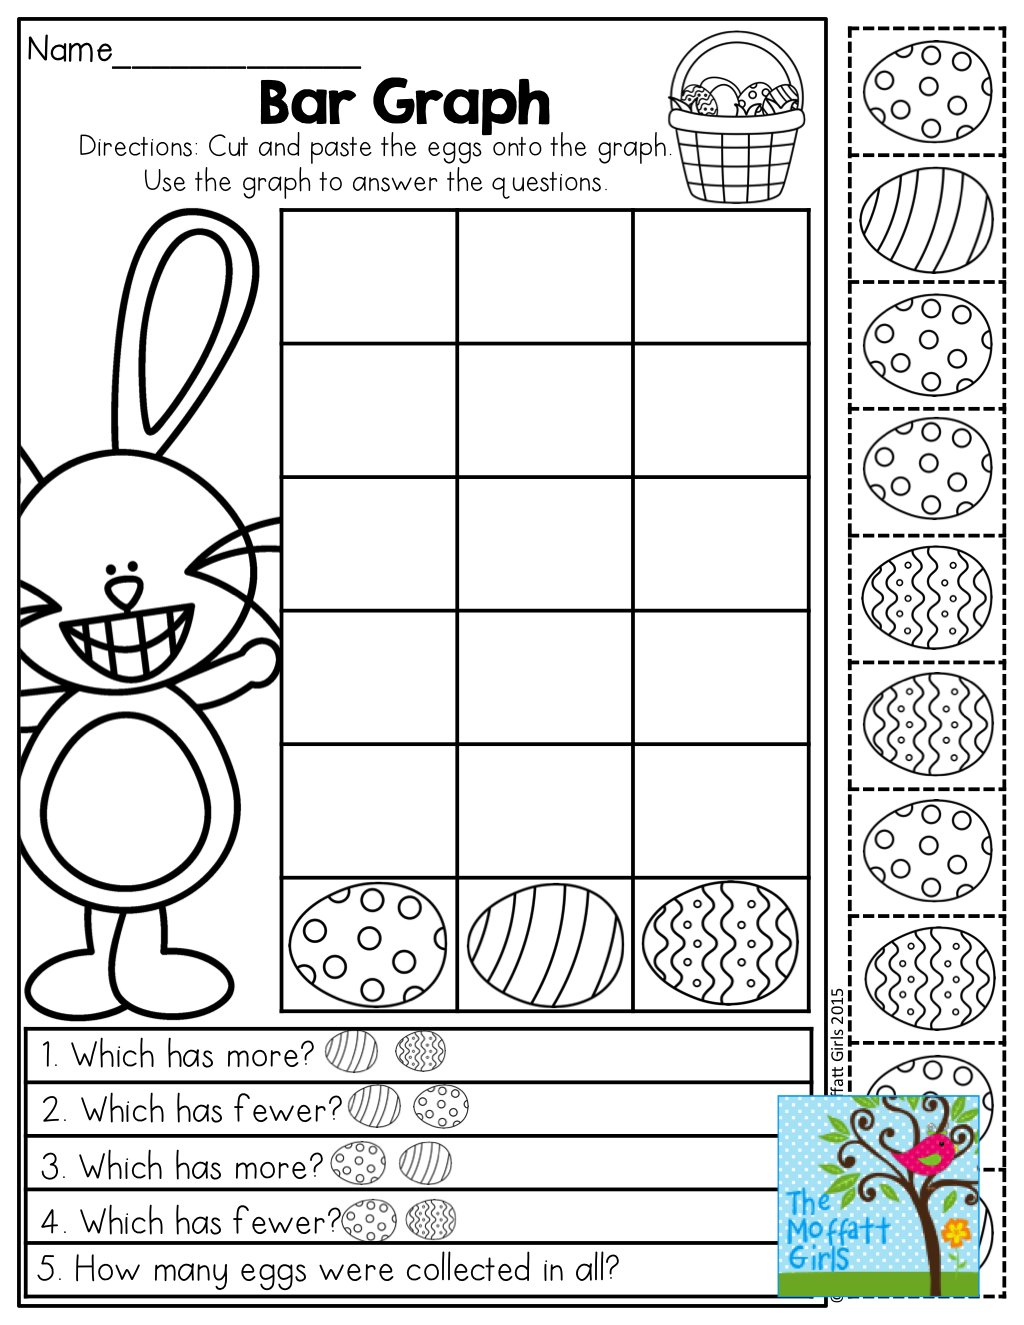 Bar Graphing With Easter Eggs Tons Of Fun Printables In This No Prep Packet Easter Math Worksheets Kindergarten Easter Worksheets Easter Kindergarten